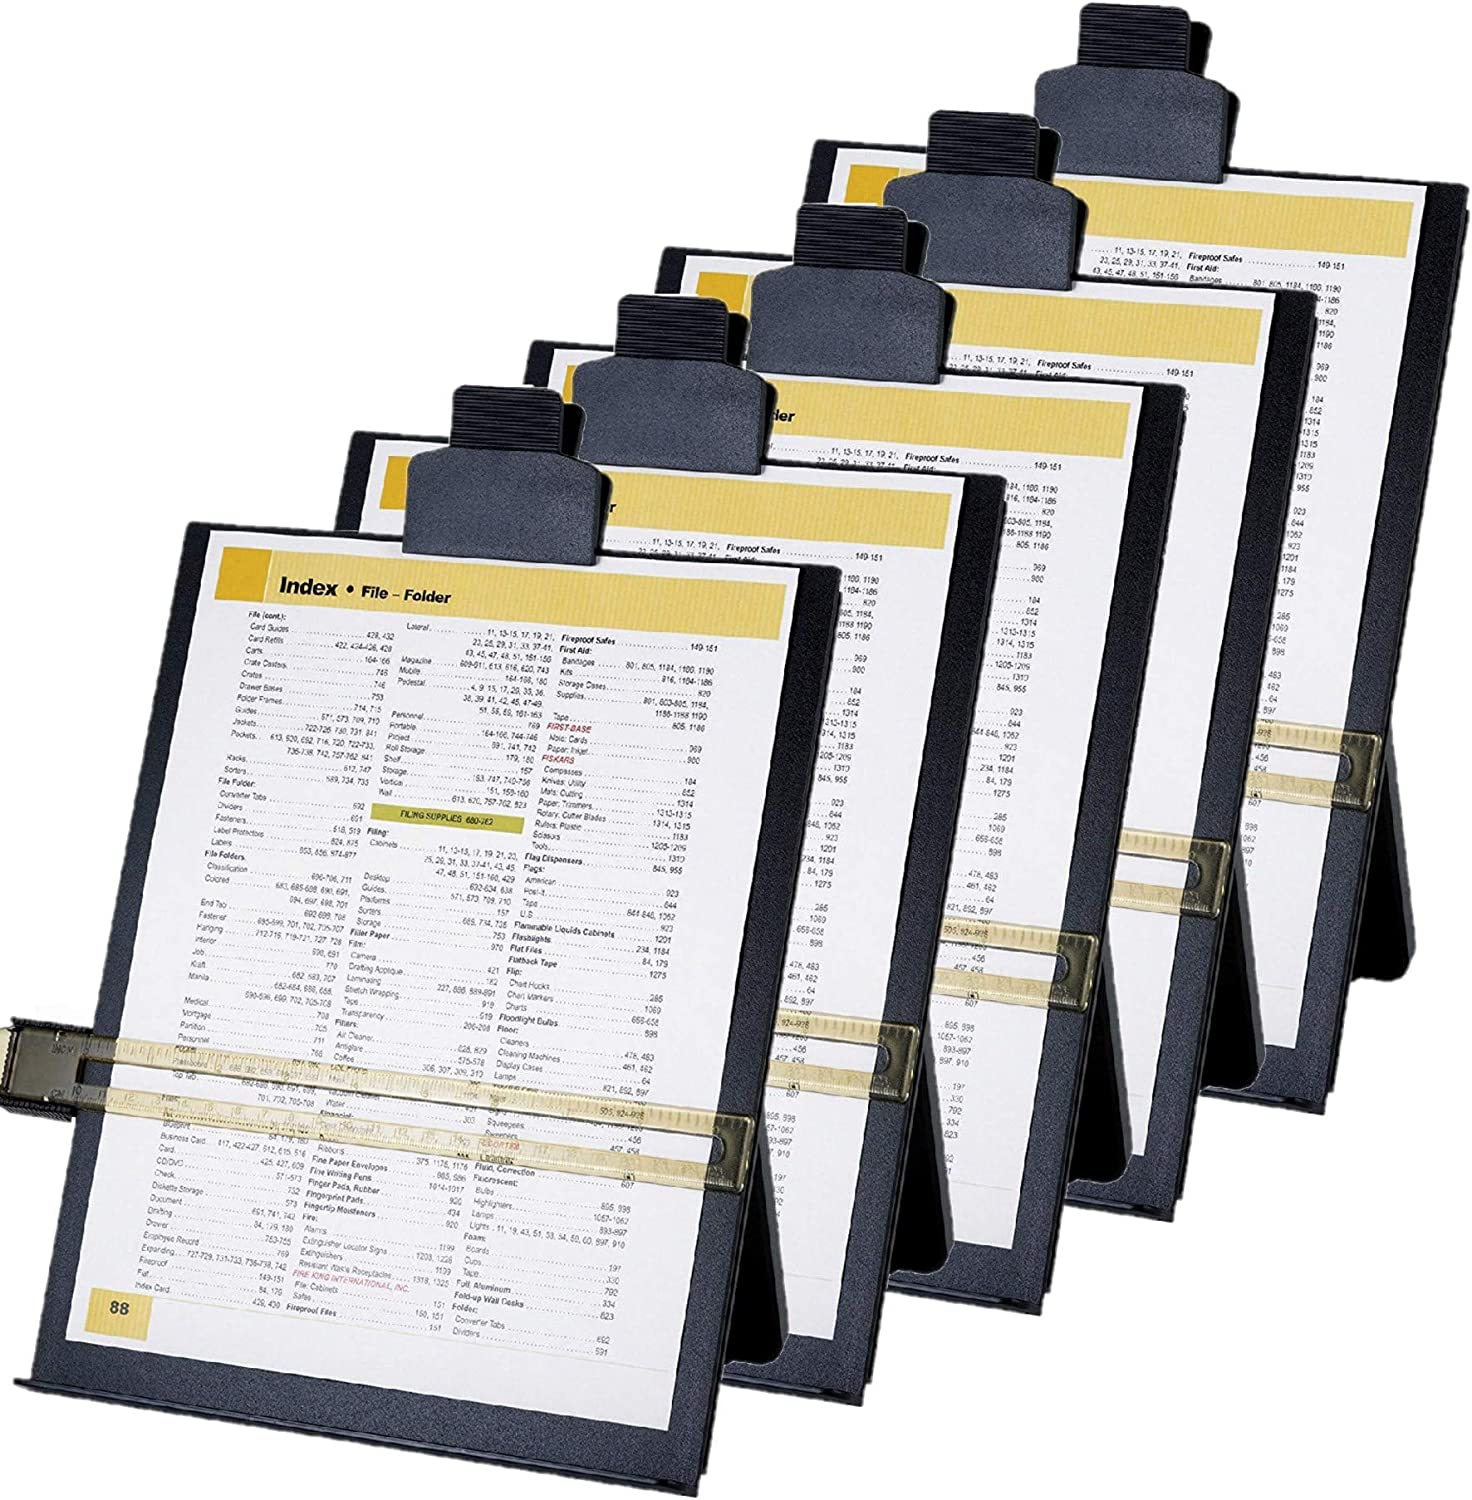 Business Source Easel Document Holders, Adjustable, 10-3 8 x 2-1 4 x 12-1 2 Inches, Black (BSN38952), 5 Packs